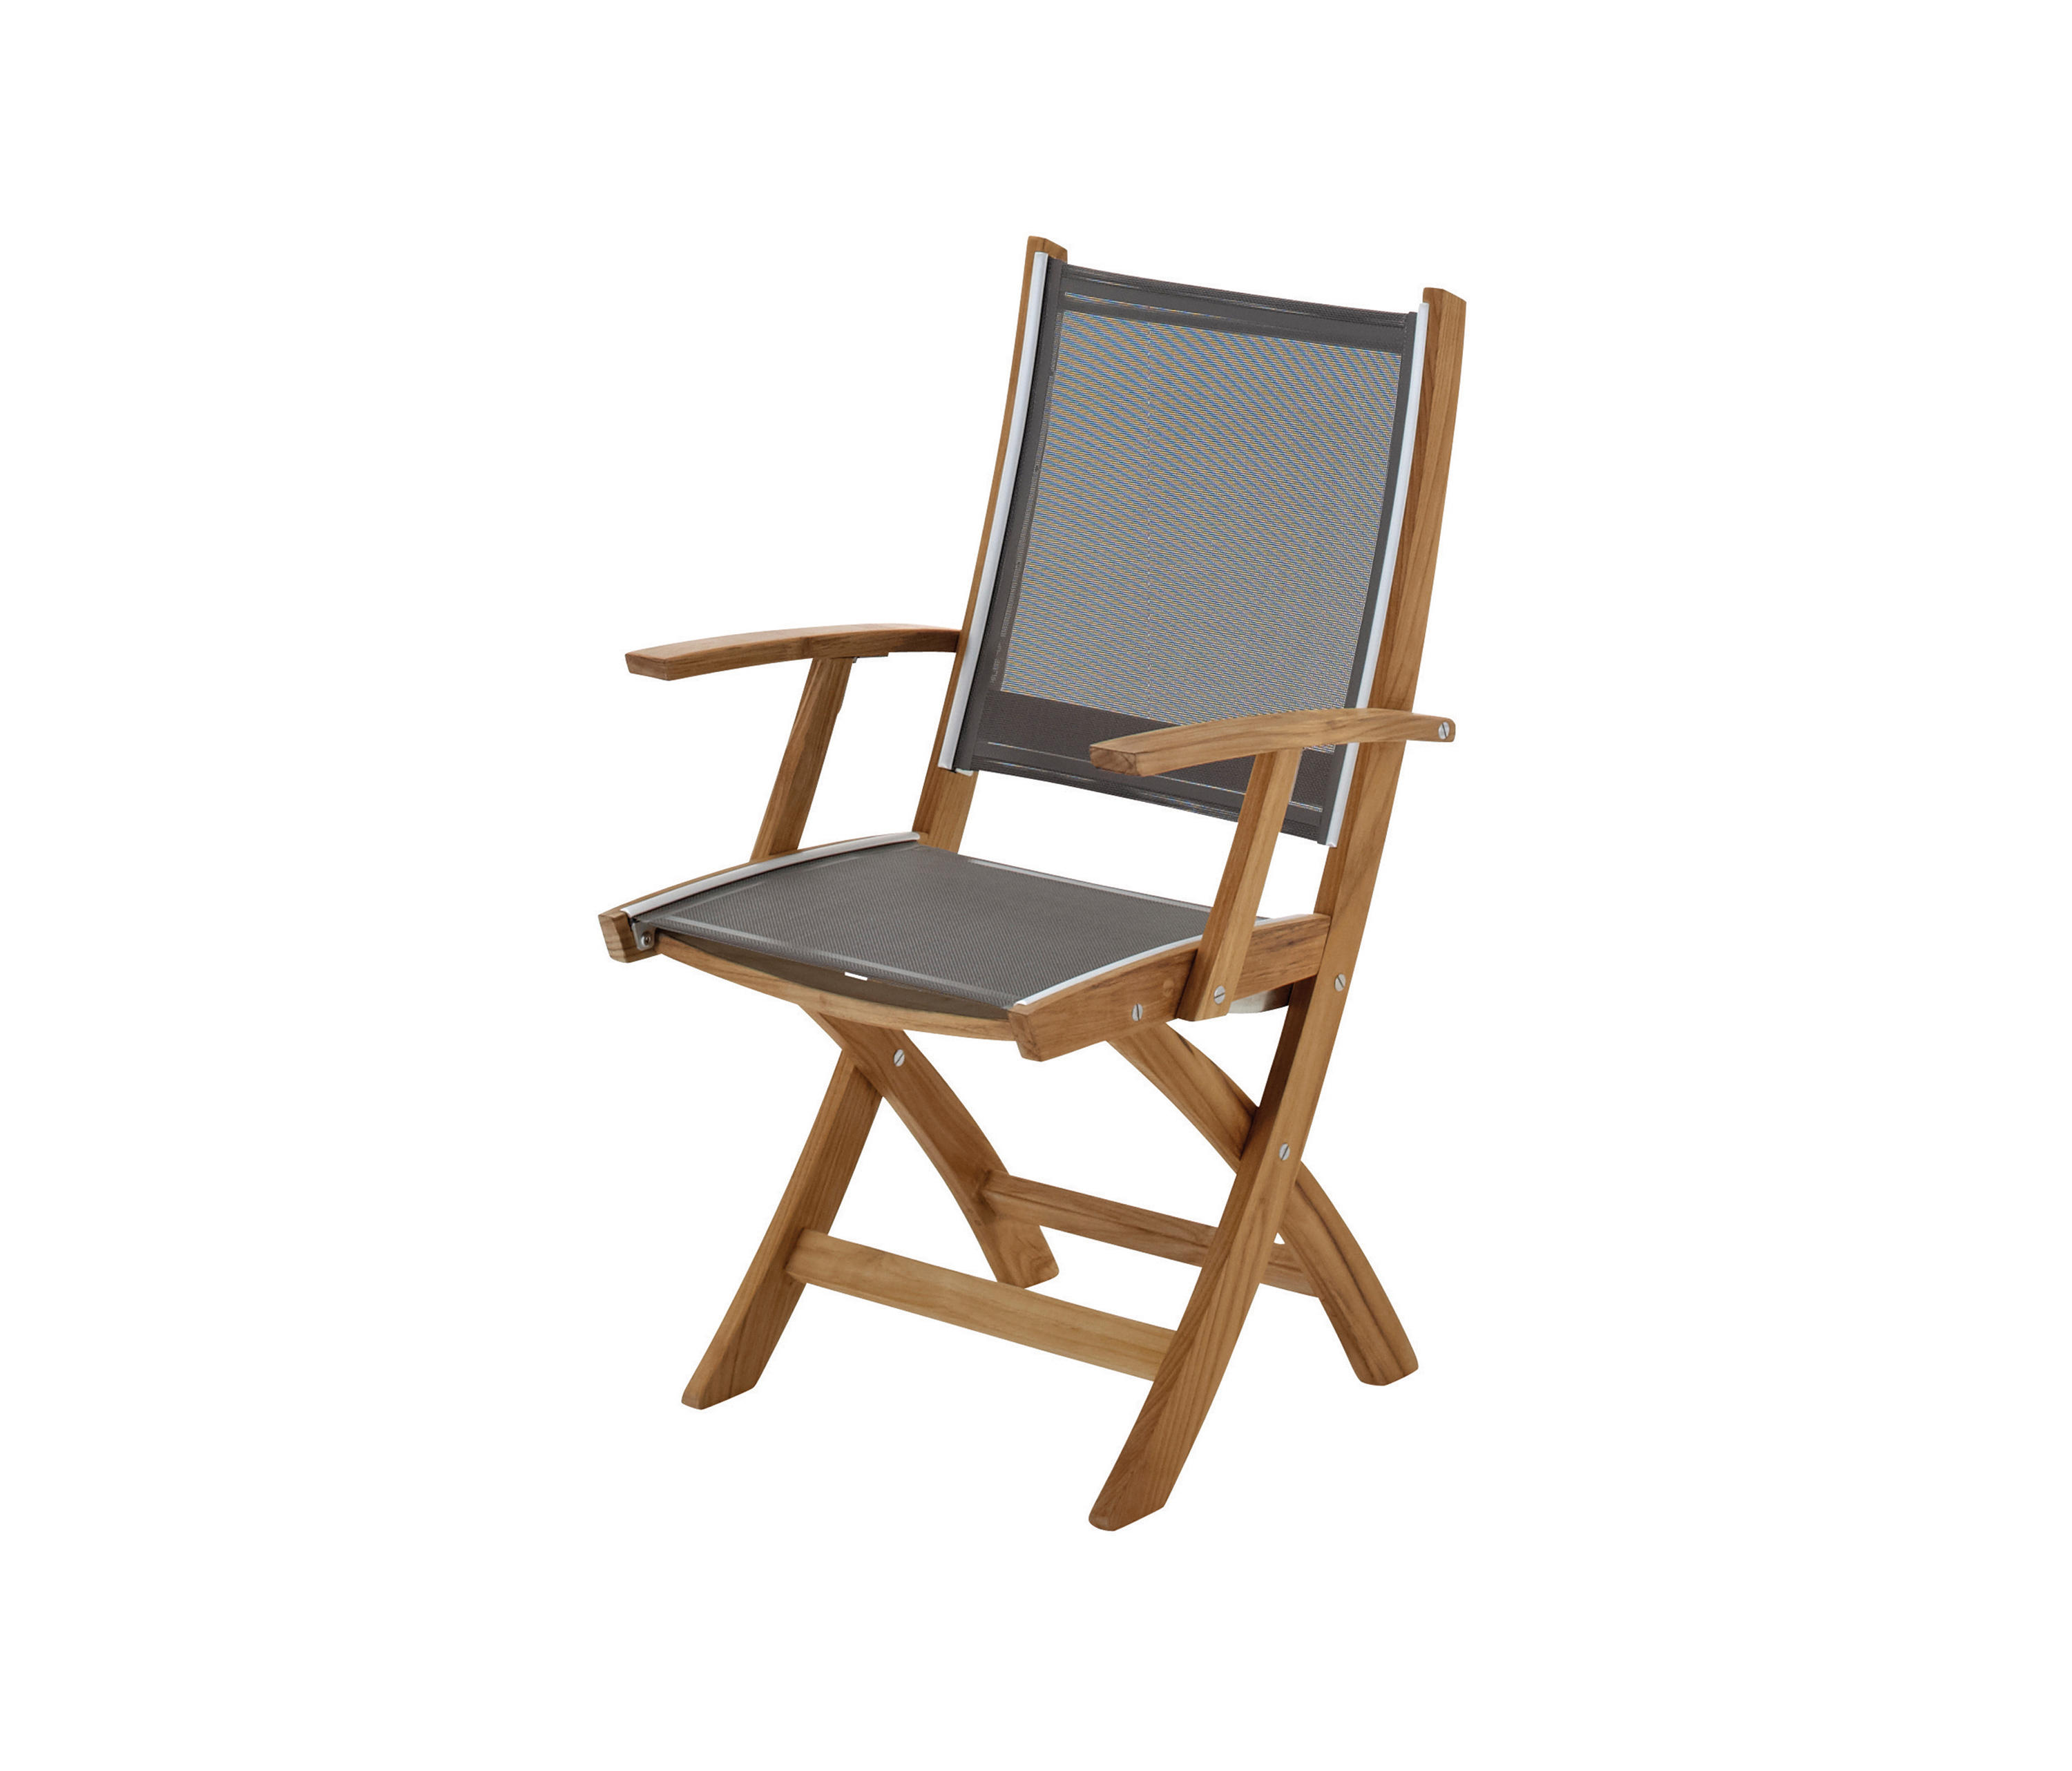 Solana Folding Chair with Arms Garden chairs by Gloster Furniture GmbH